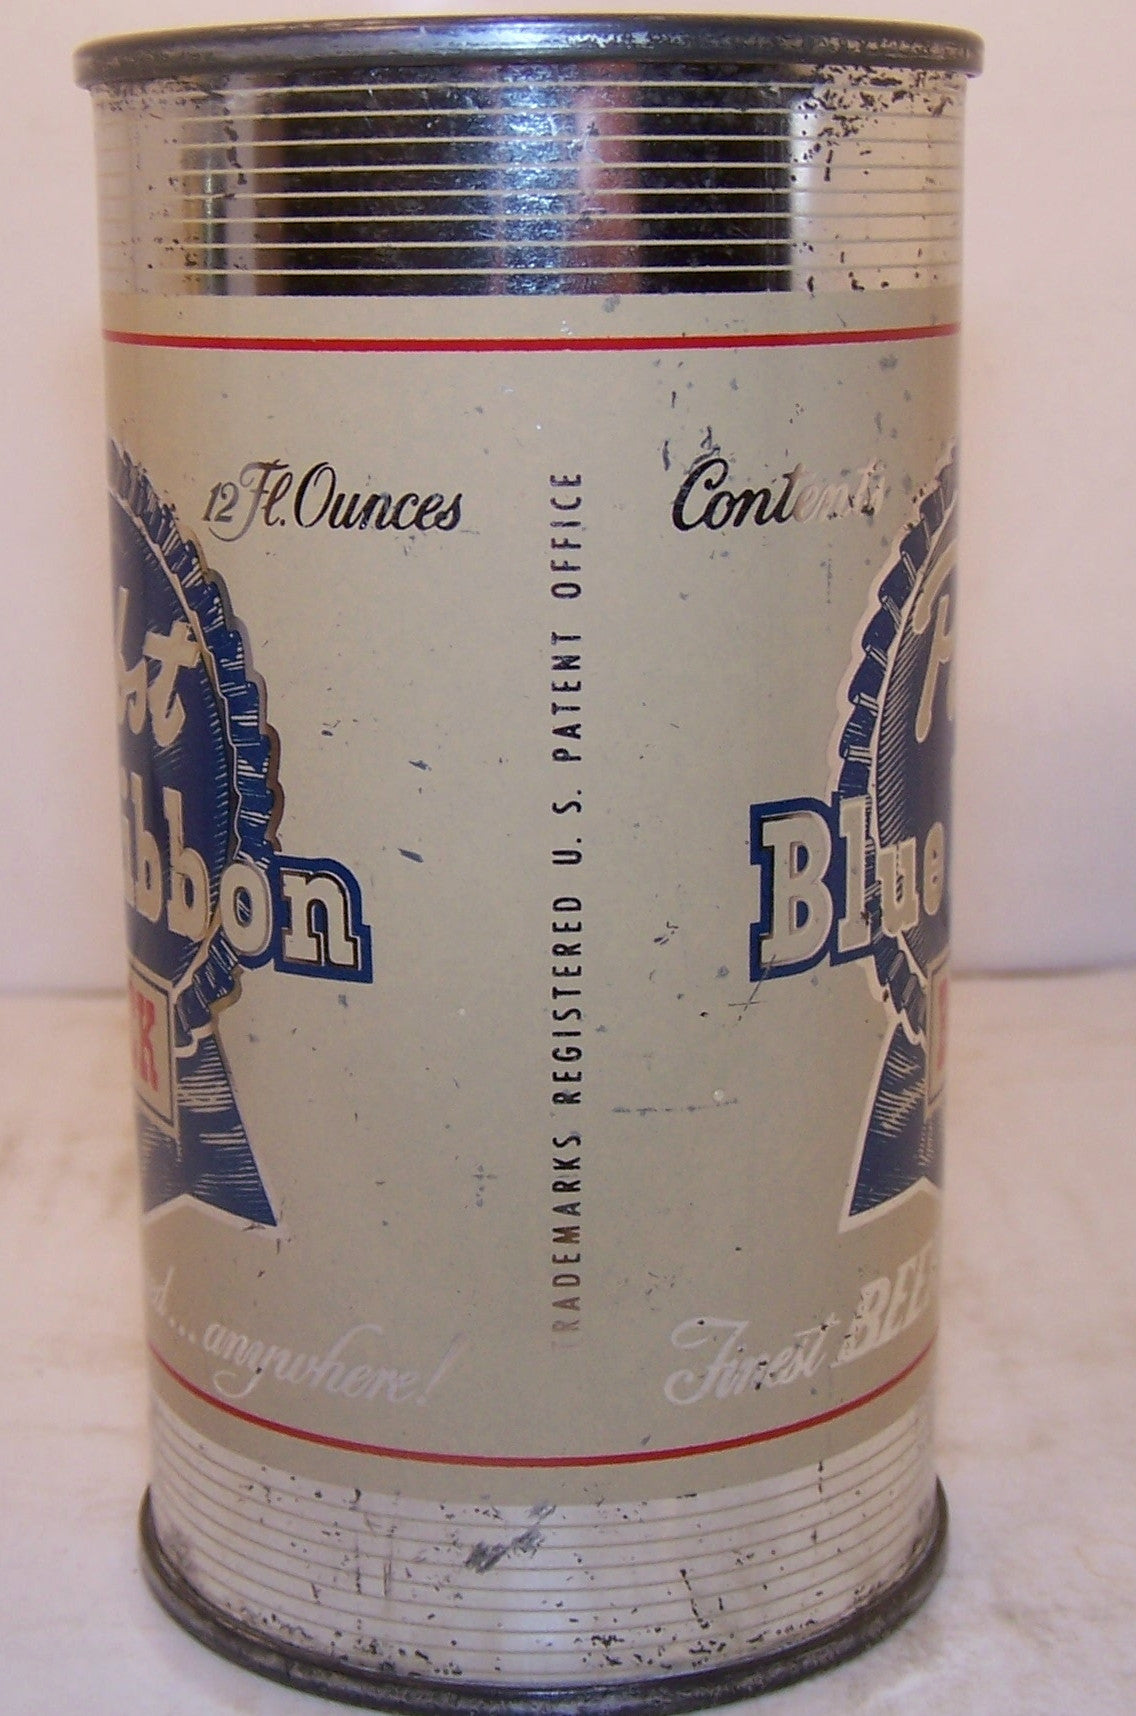 Pabst Blue Ribbon Bock, USBC 112-6, grade 1/1- Sold on 11/20/14